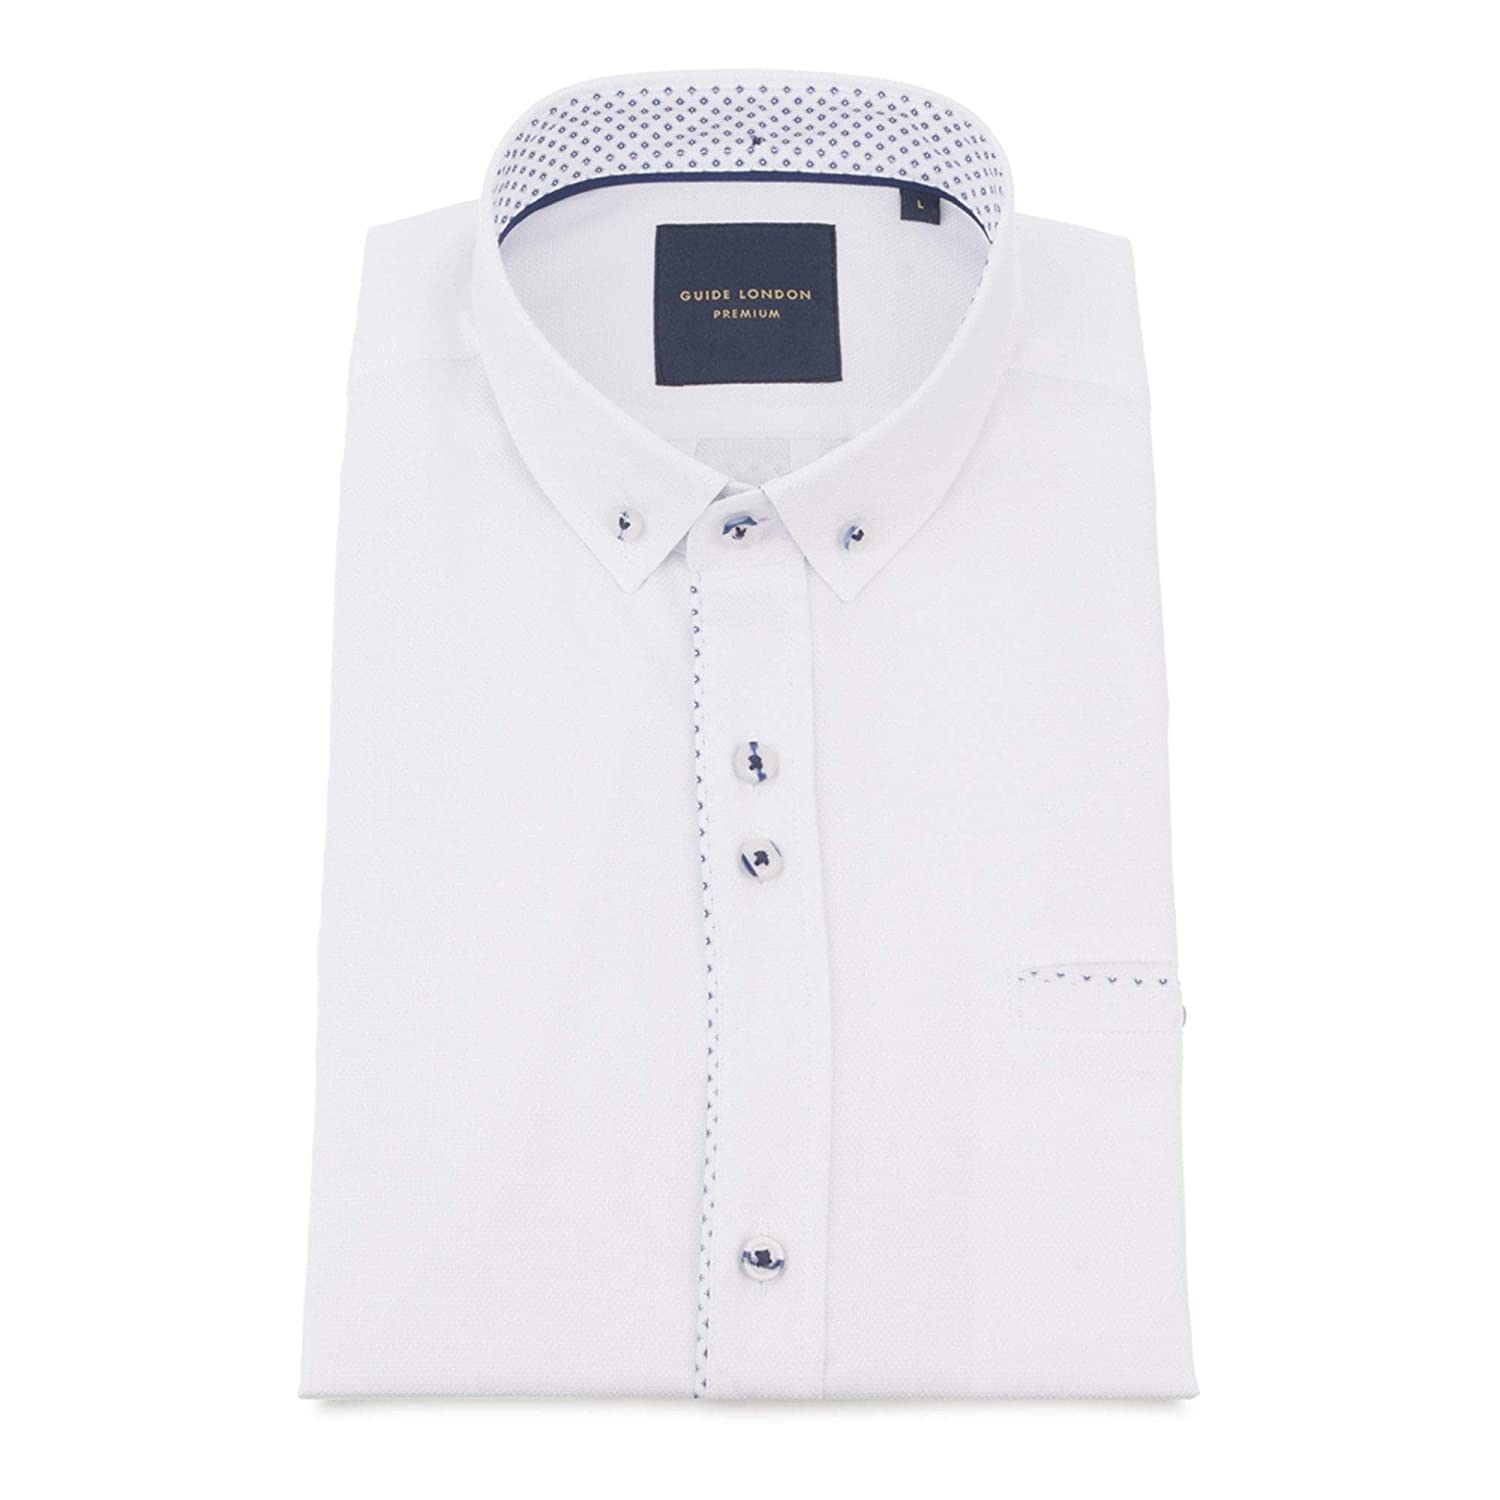 Guide London Pure Cotton Soft and Light Texture Mens Short Sleeve Shirt 3XLarge White